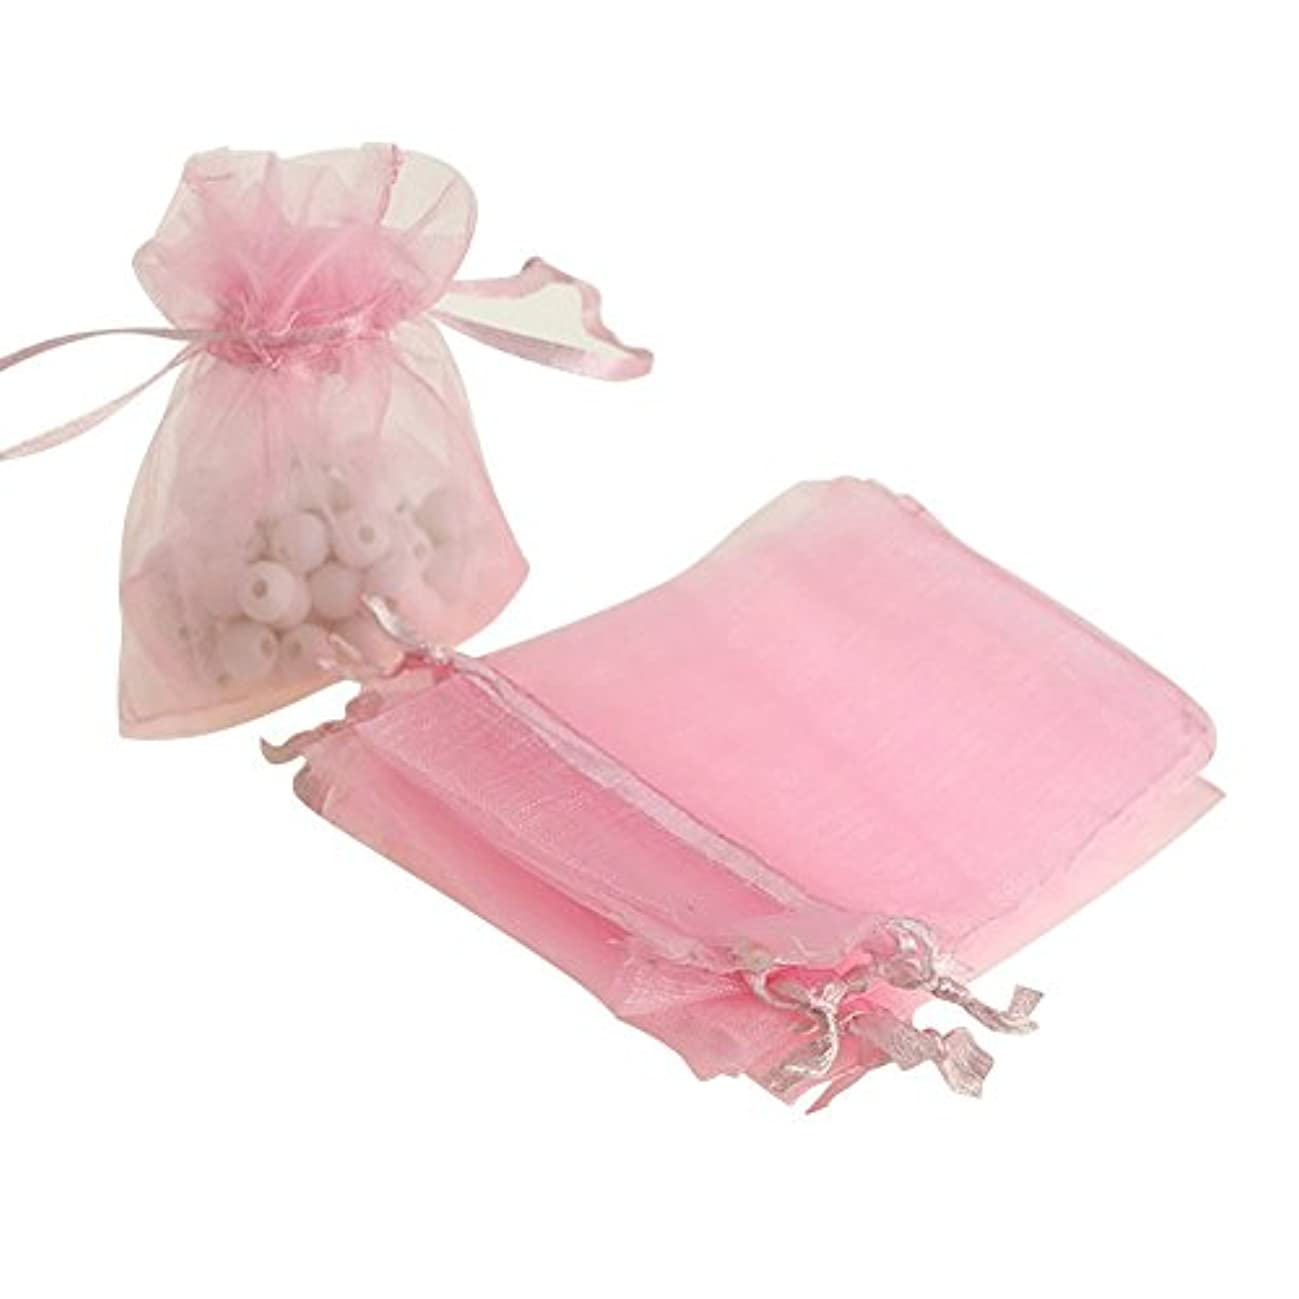 Tvoip Drawstring Organza Jewelry Favor Pouches Wedding Party Festival Gift Bags Candy Bags (Pack of 50) (Pink)